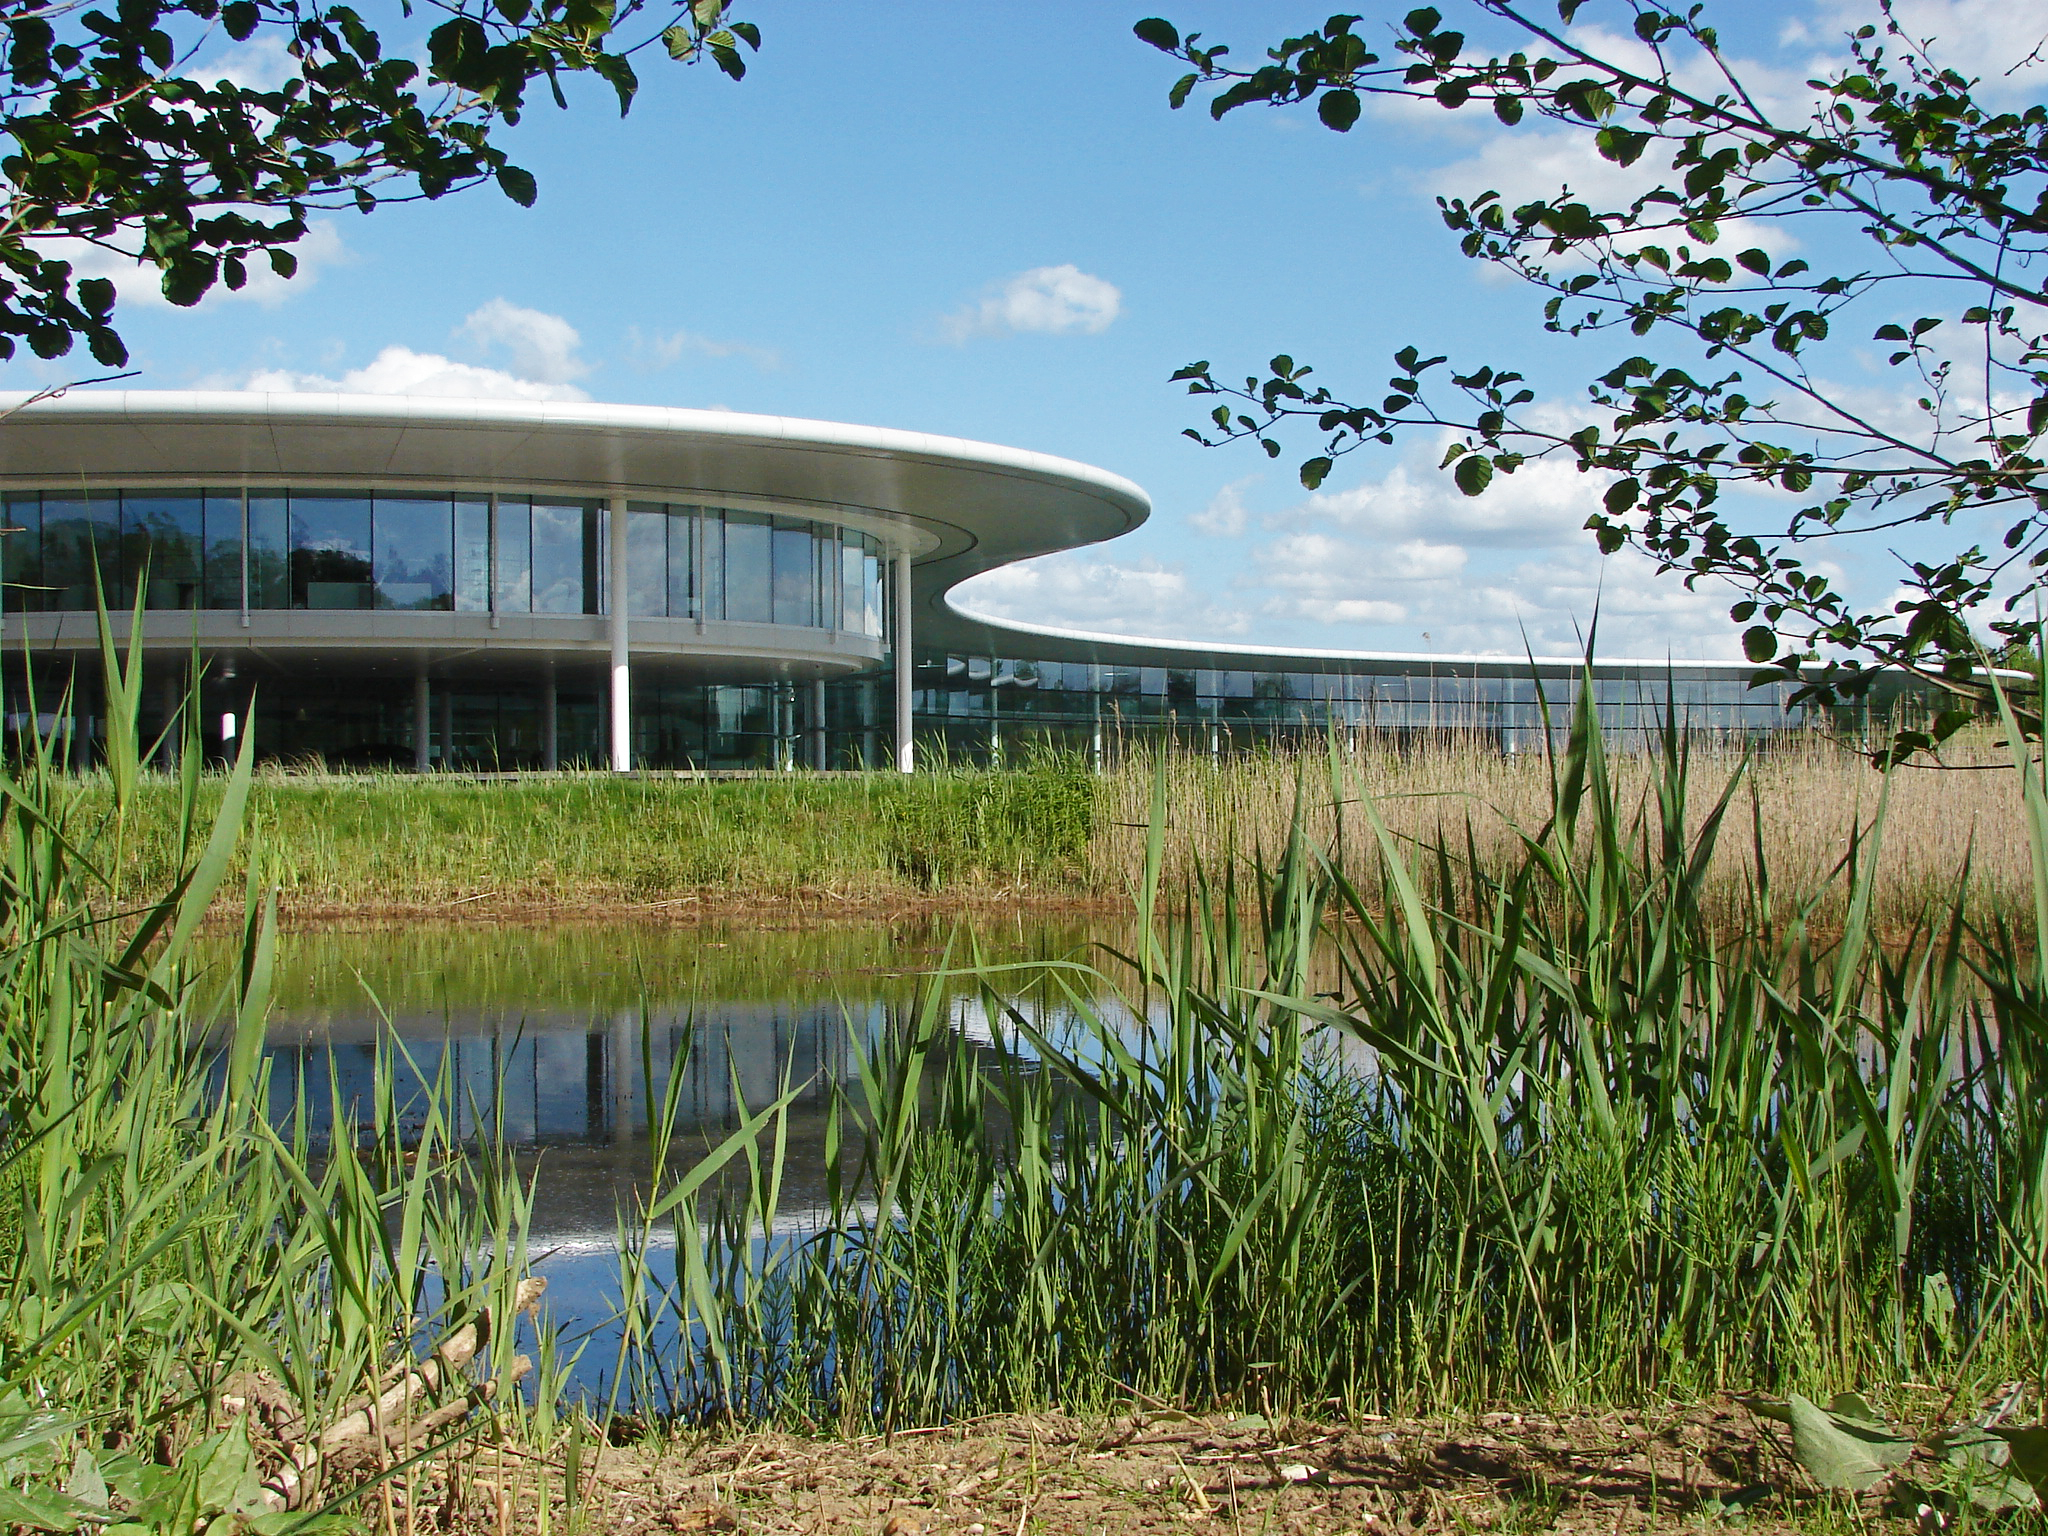 mclaren technology centre - wikipedia